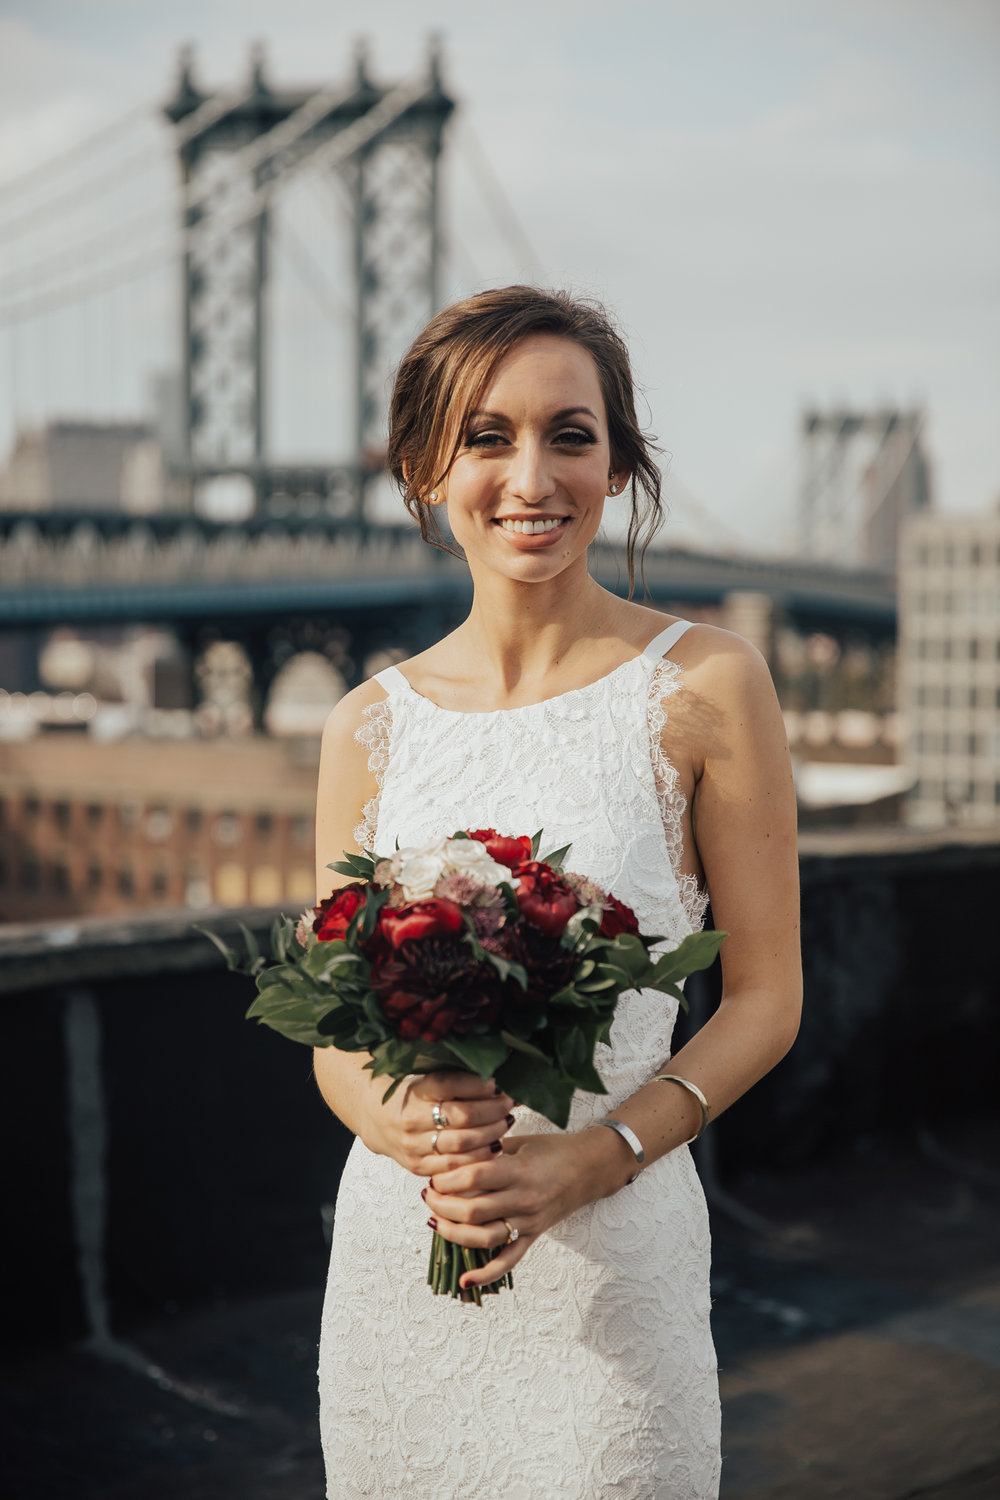 26-bridge-wedding-brooklyn-015.JPG